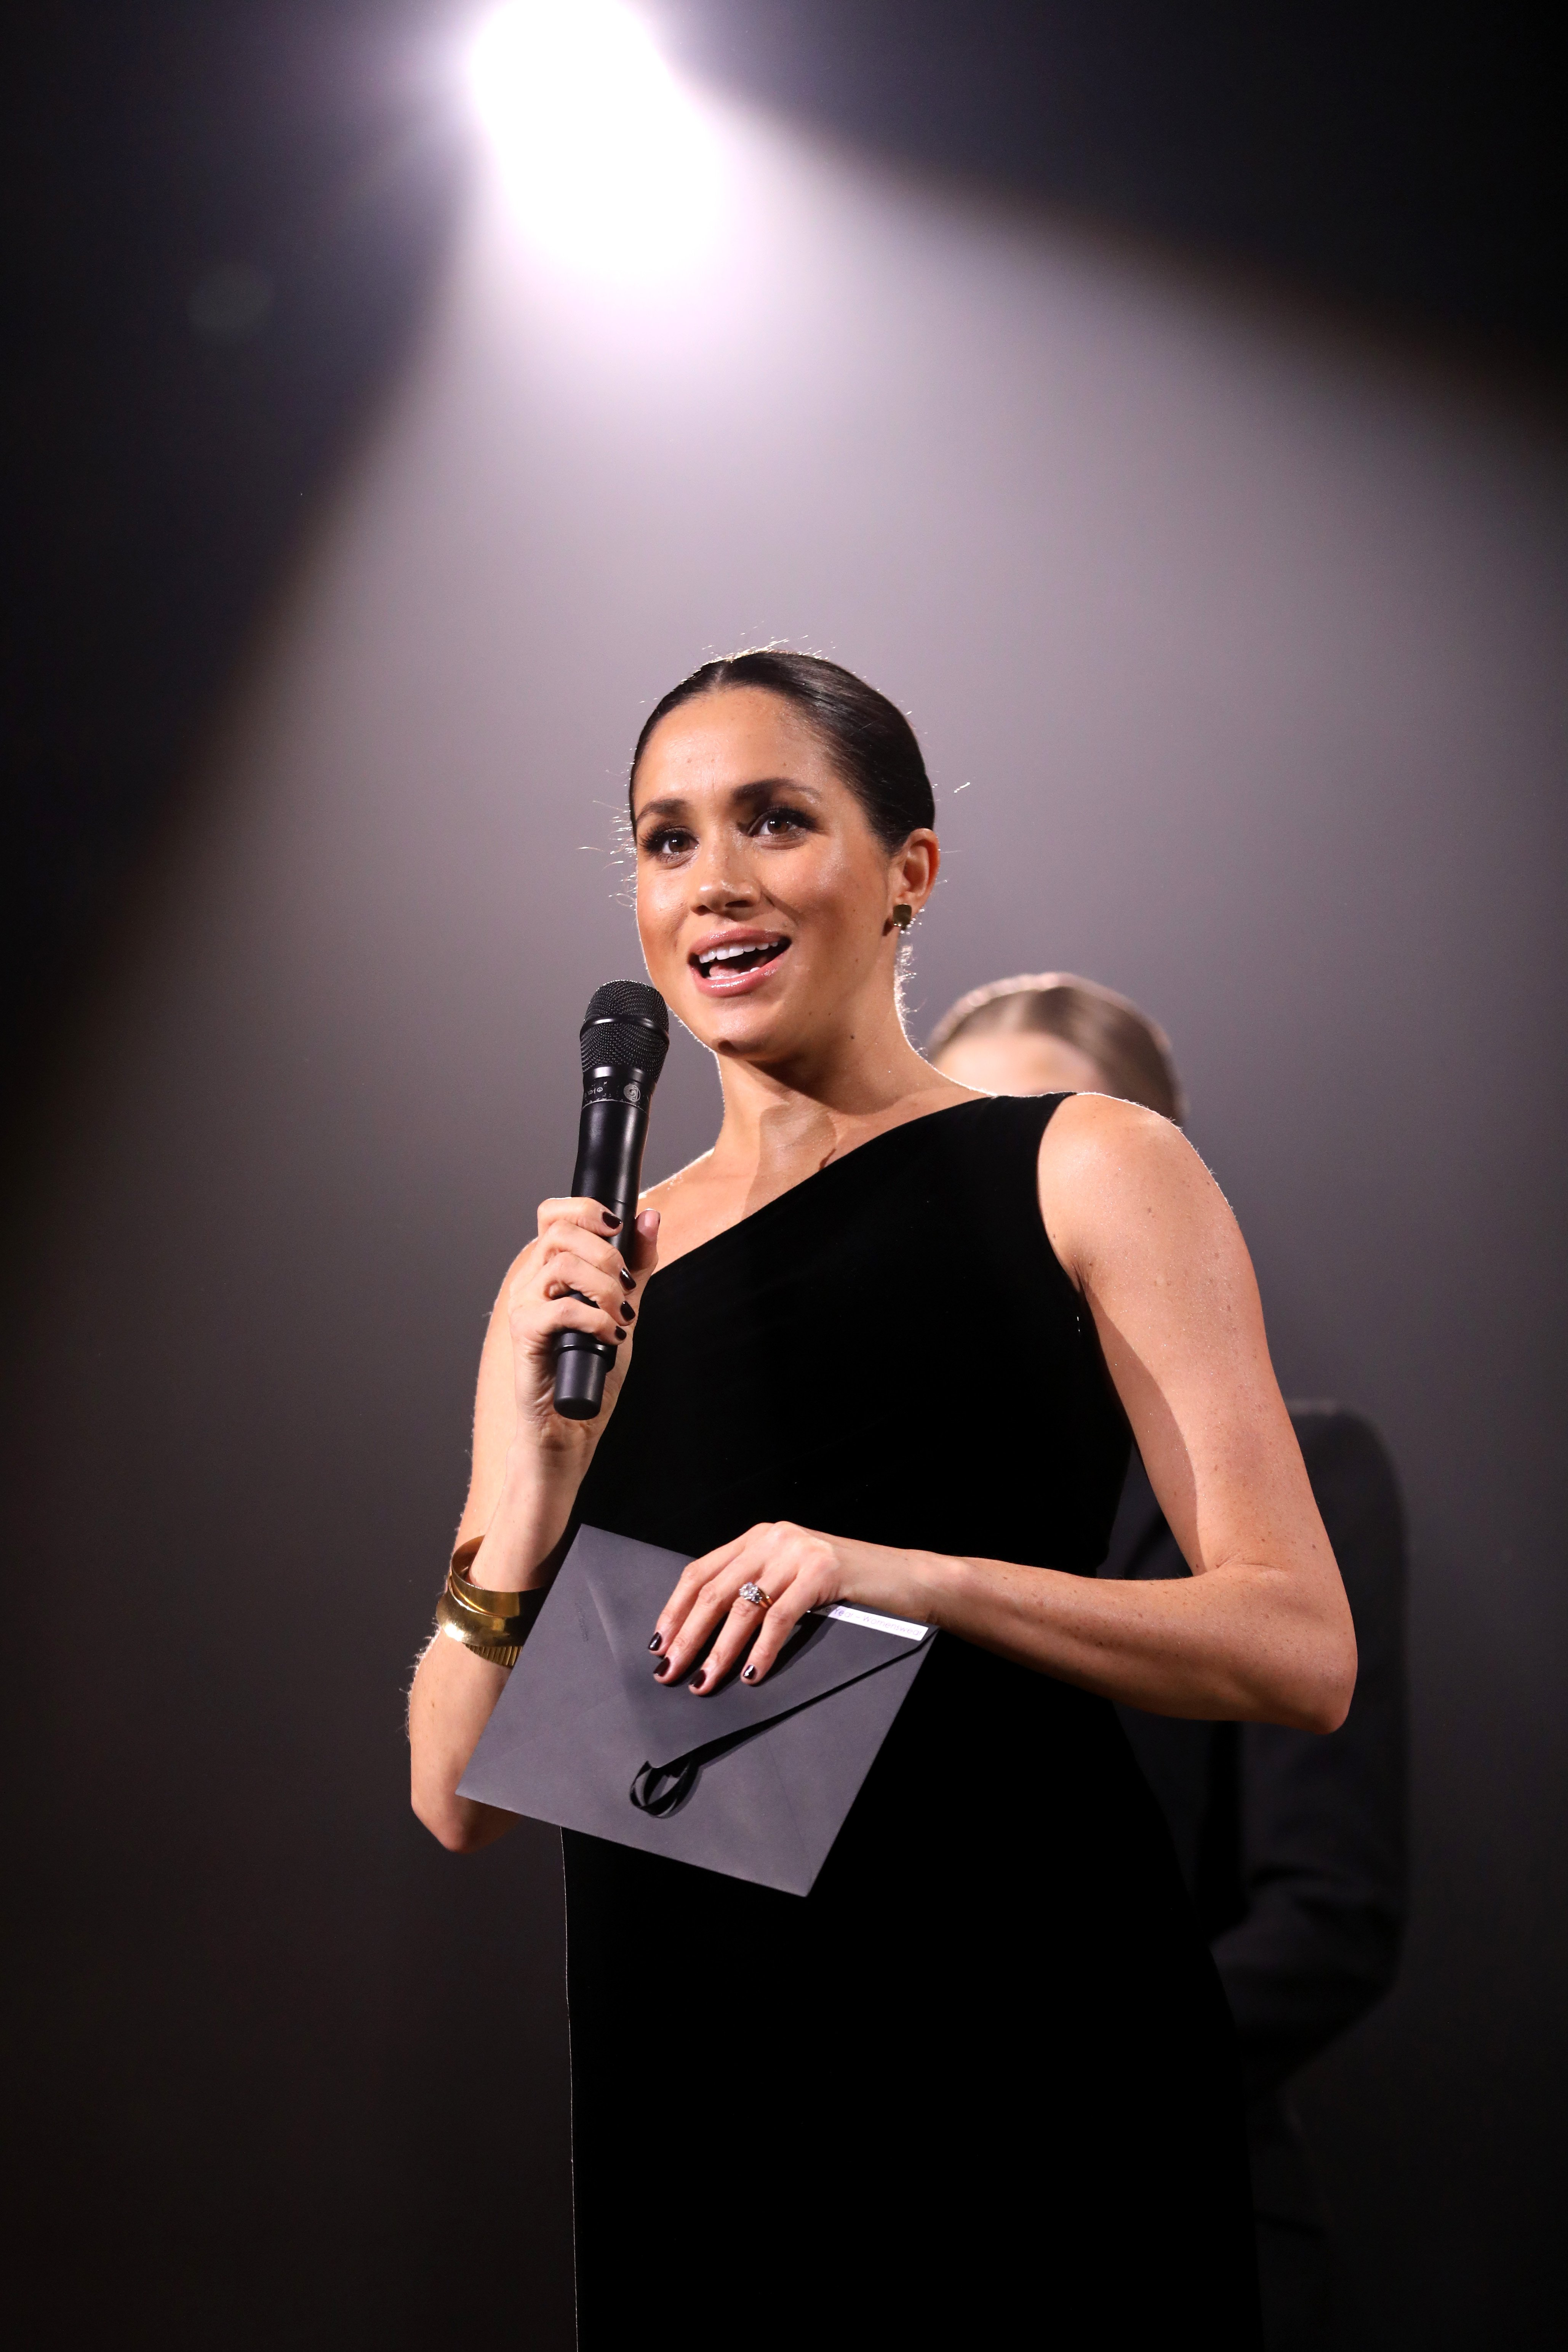 Meghan Markle at the British Fashion Awards in December 2018 | Photo: Getty Images